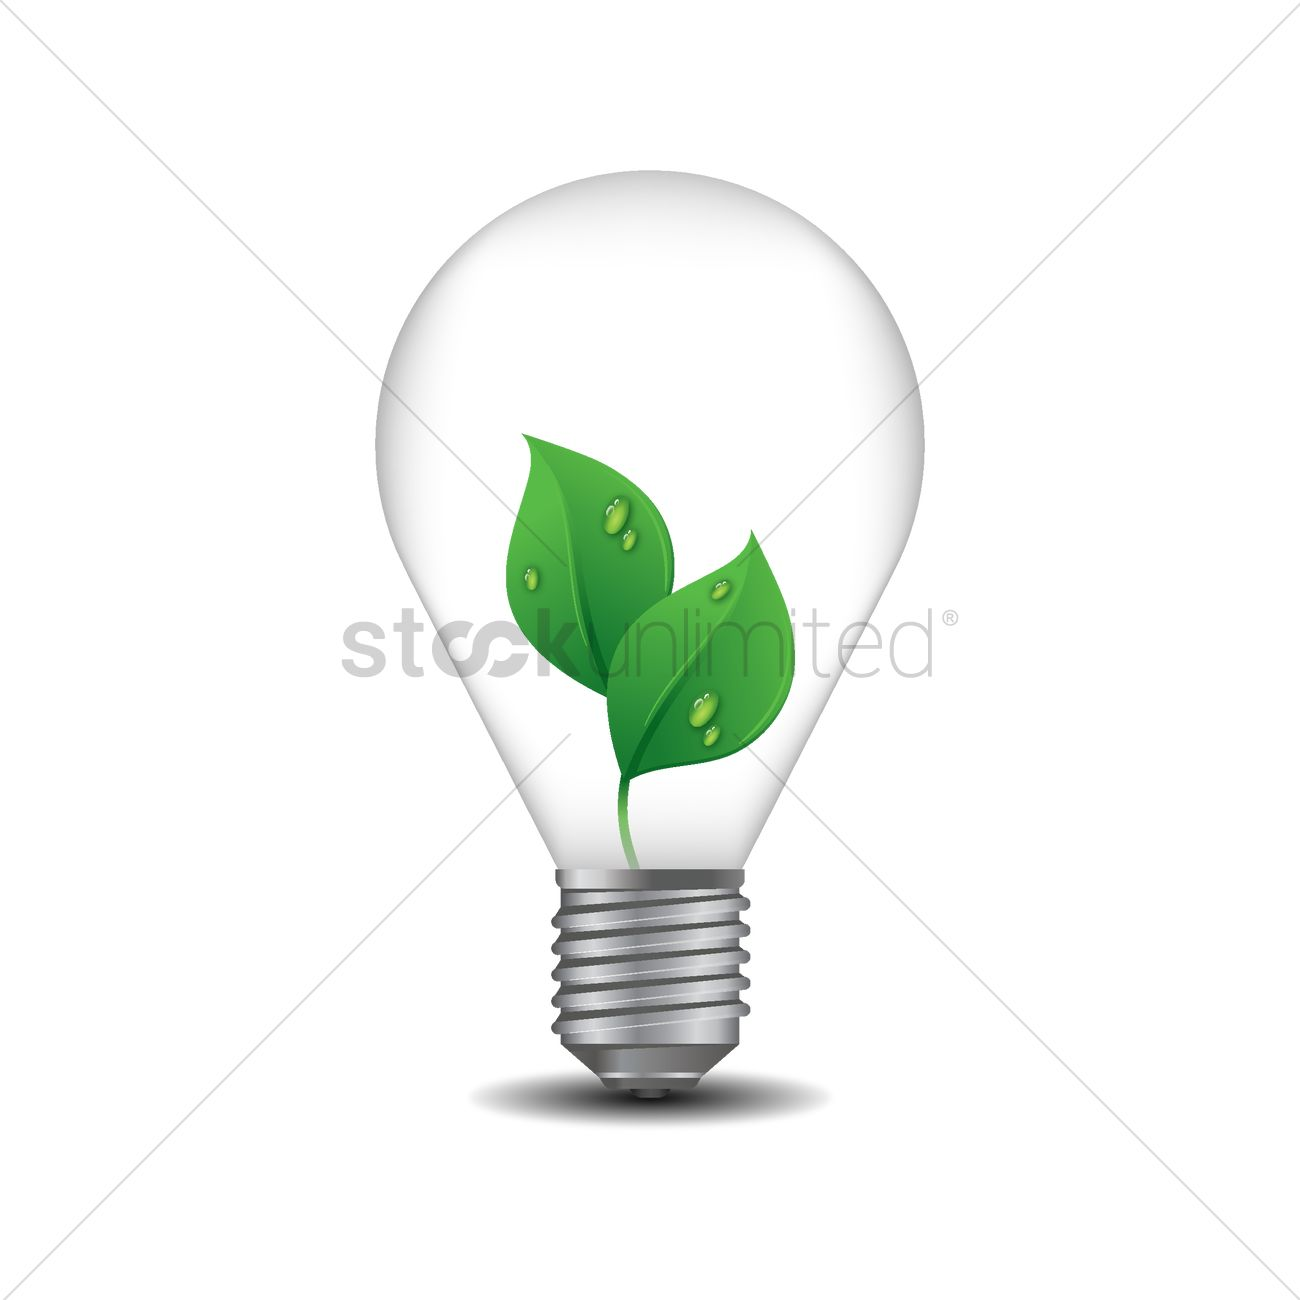 Light Bulb With Eco Friendly Concept Vector Graphic